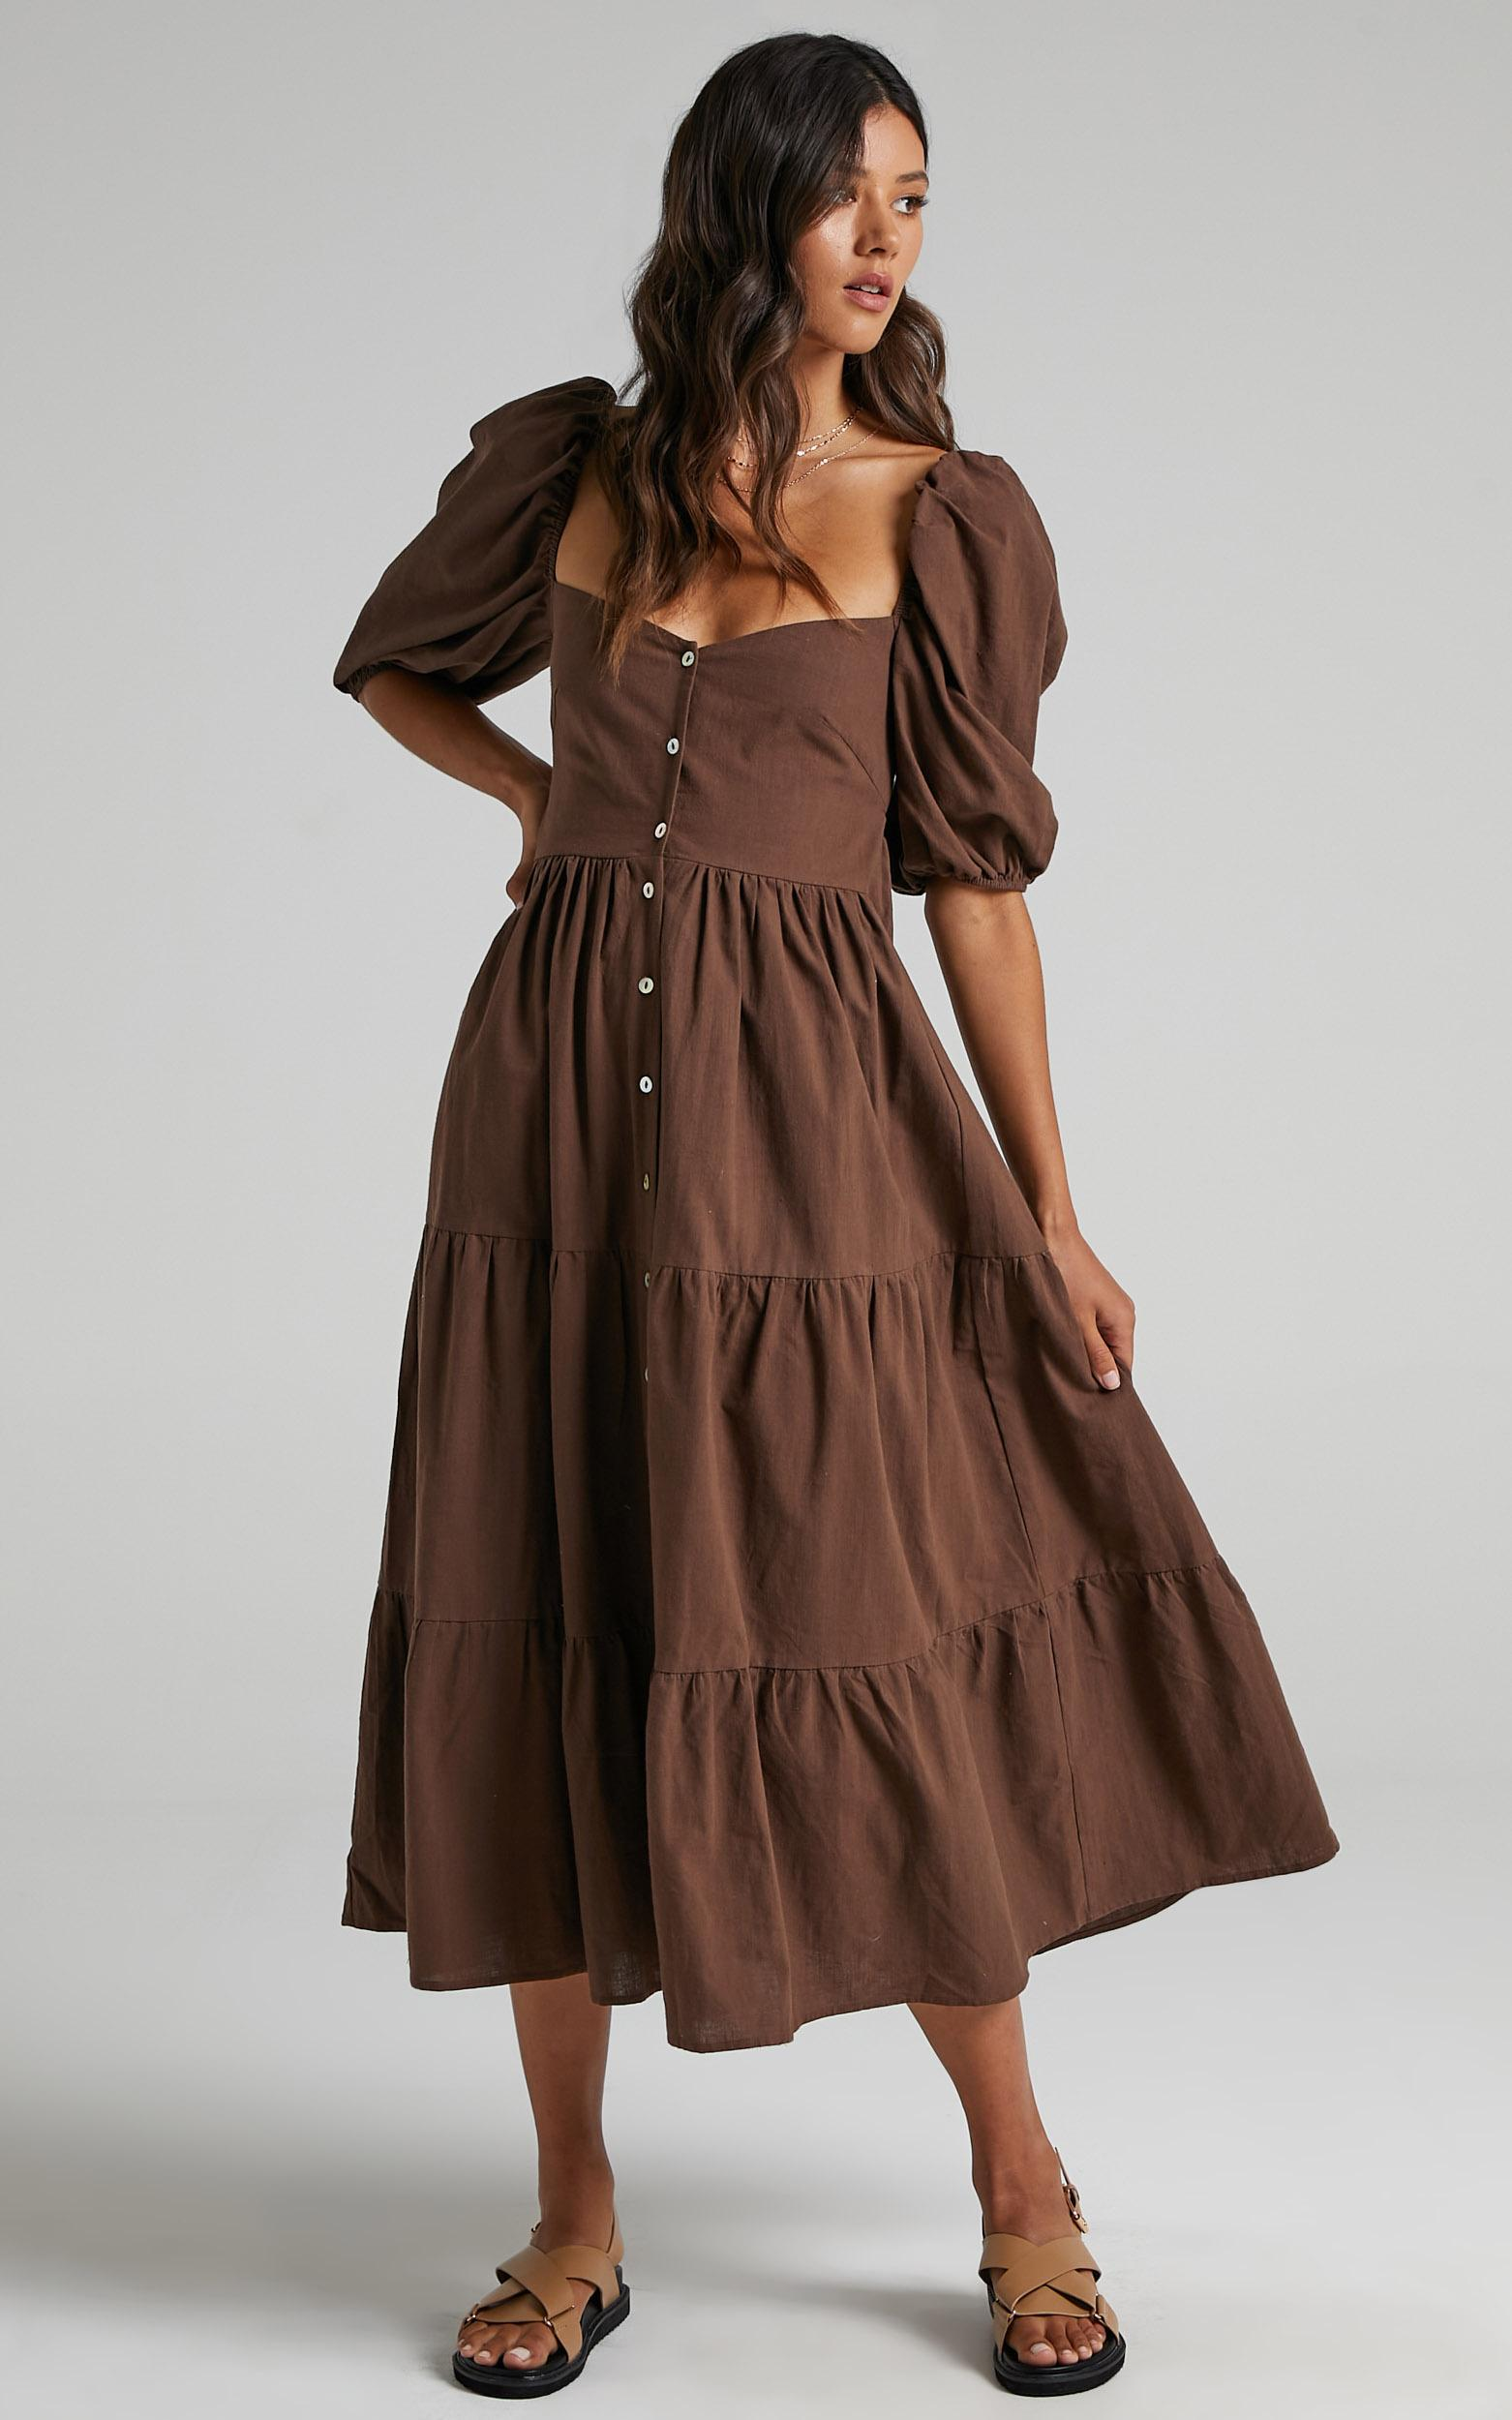 Palmer Dress in Chocolate - 6 (XS), Brown, hi-res image number null